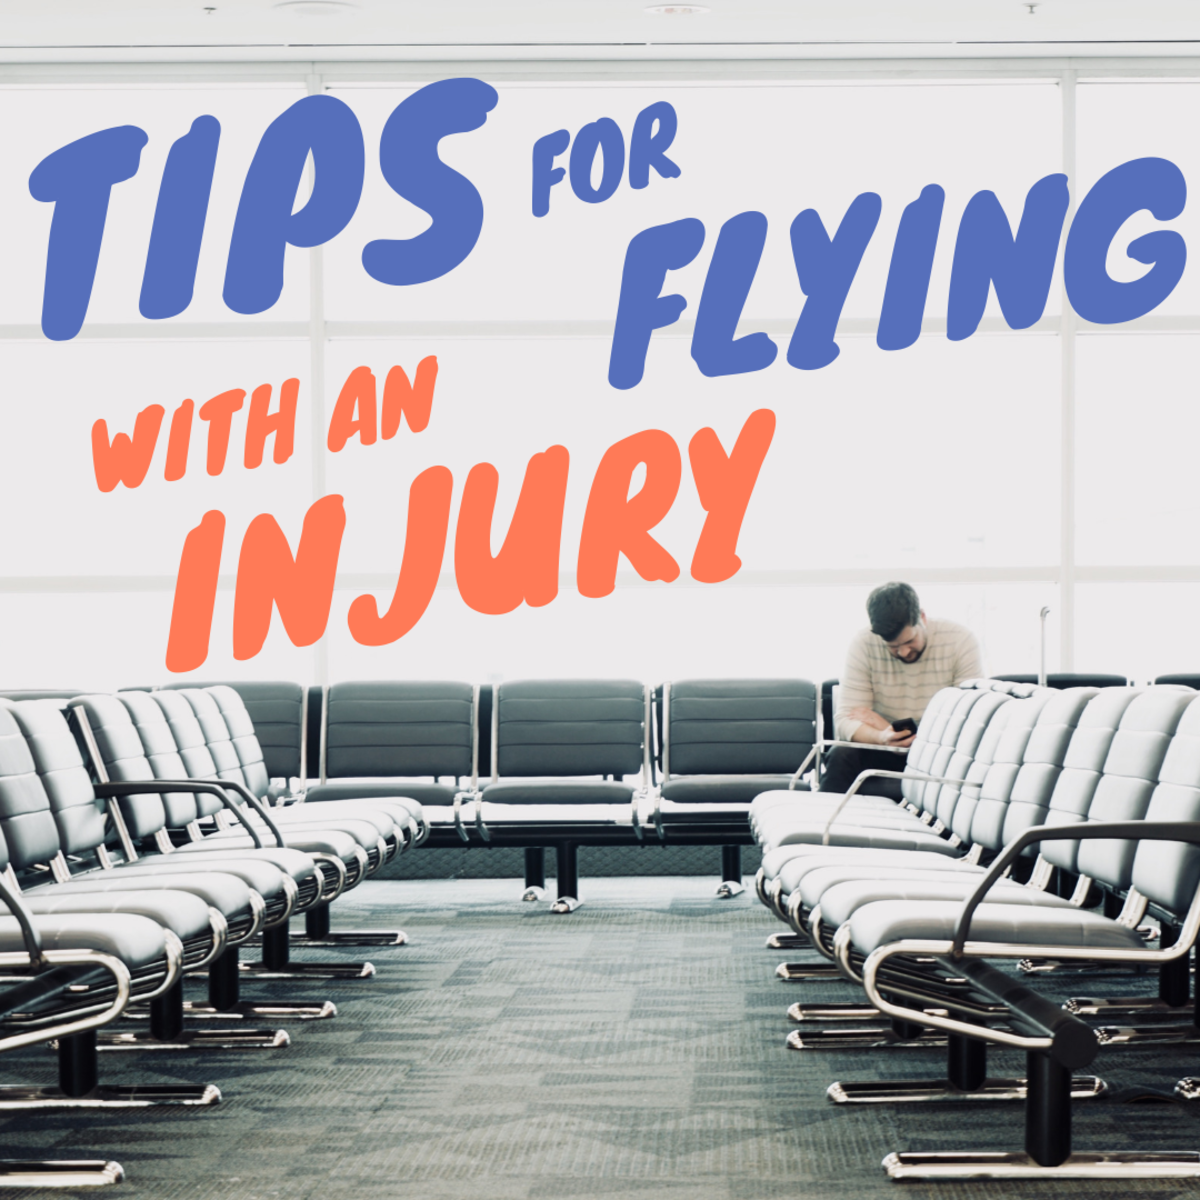 Airports and Aircasts: Tips for Flying When Injured